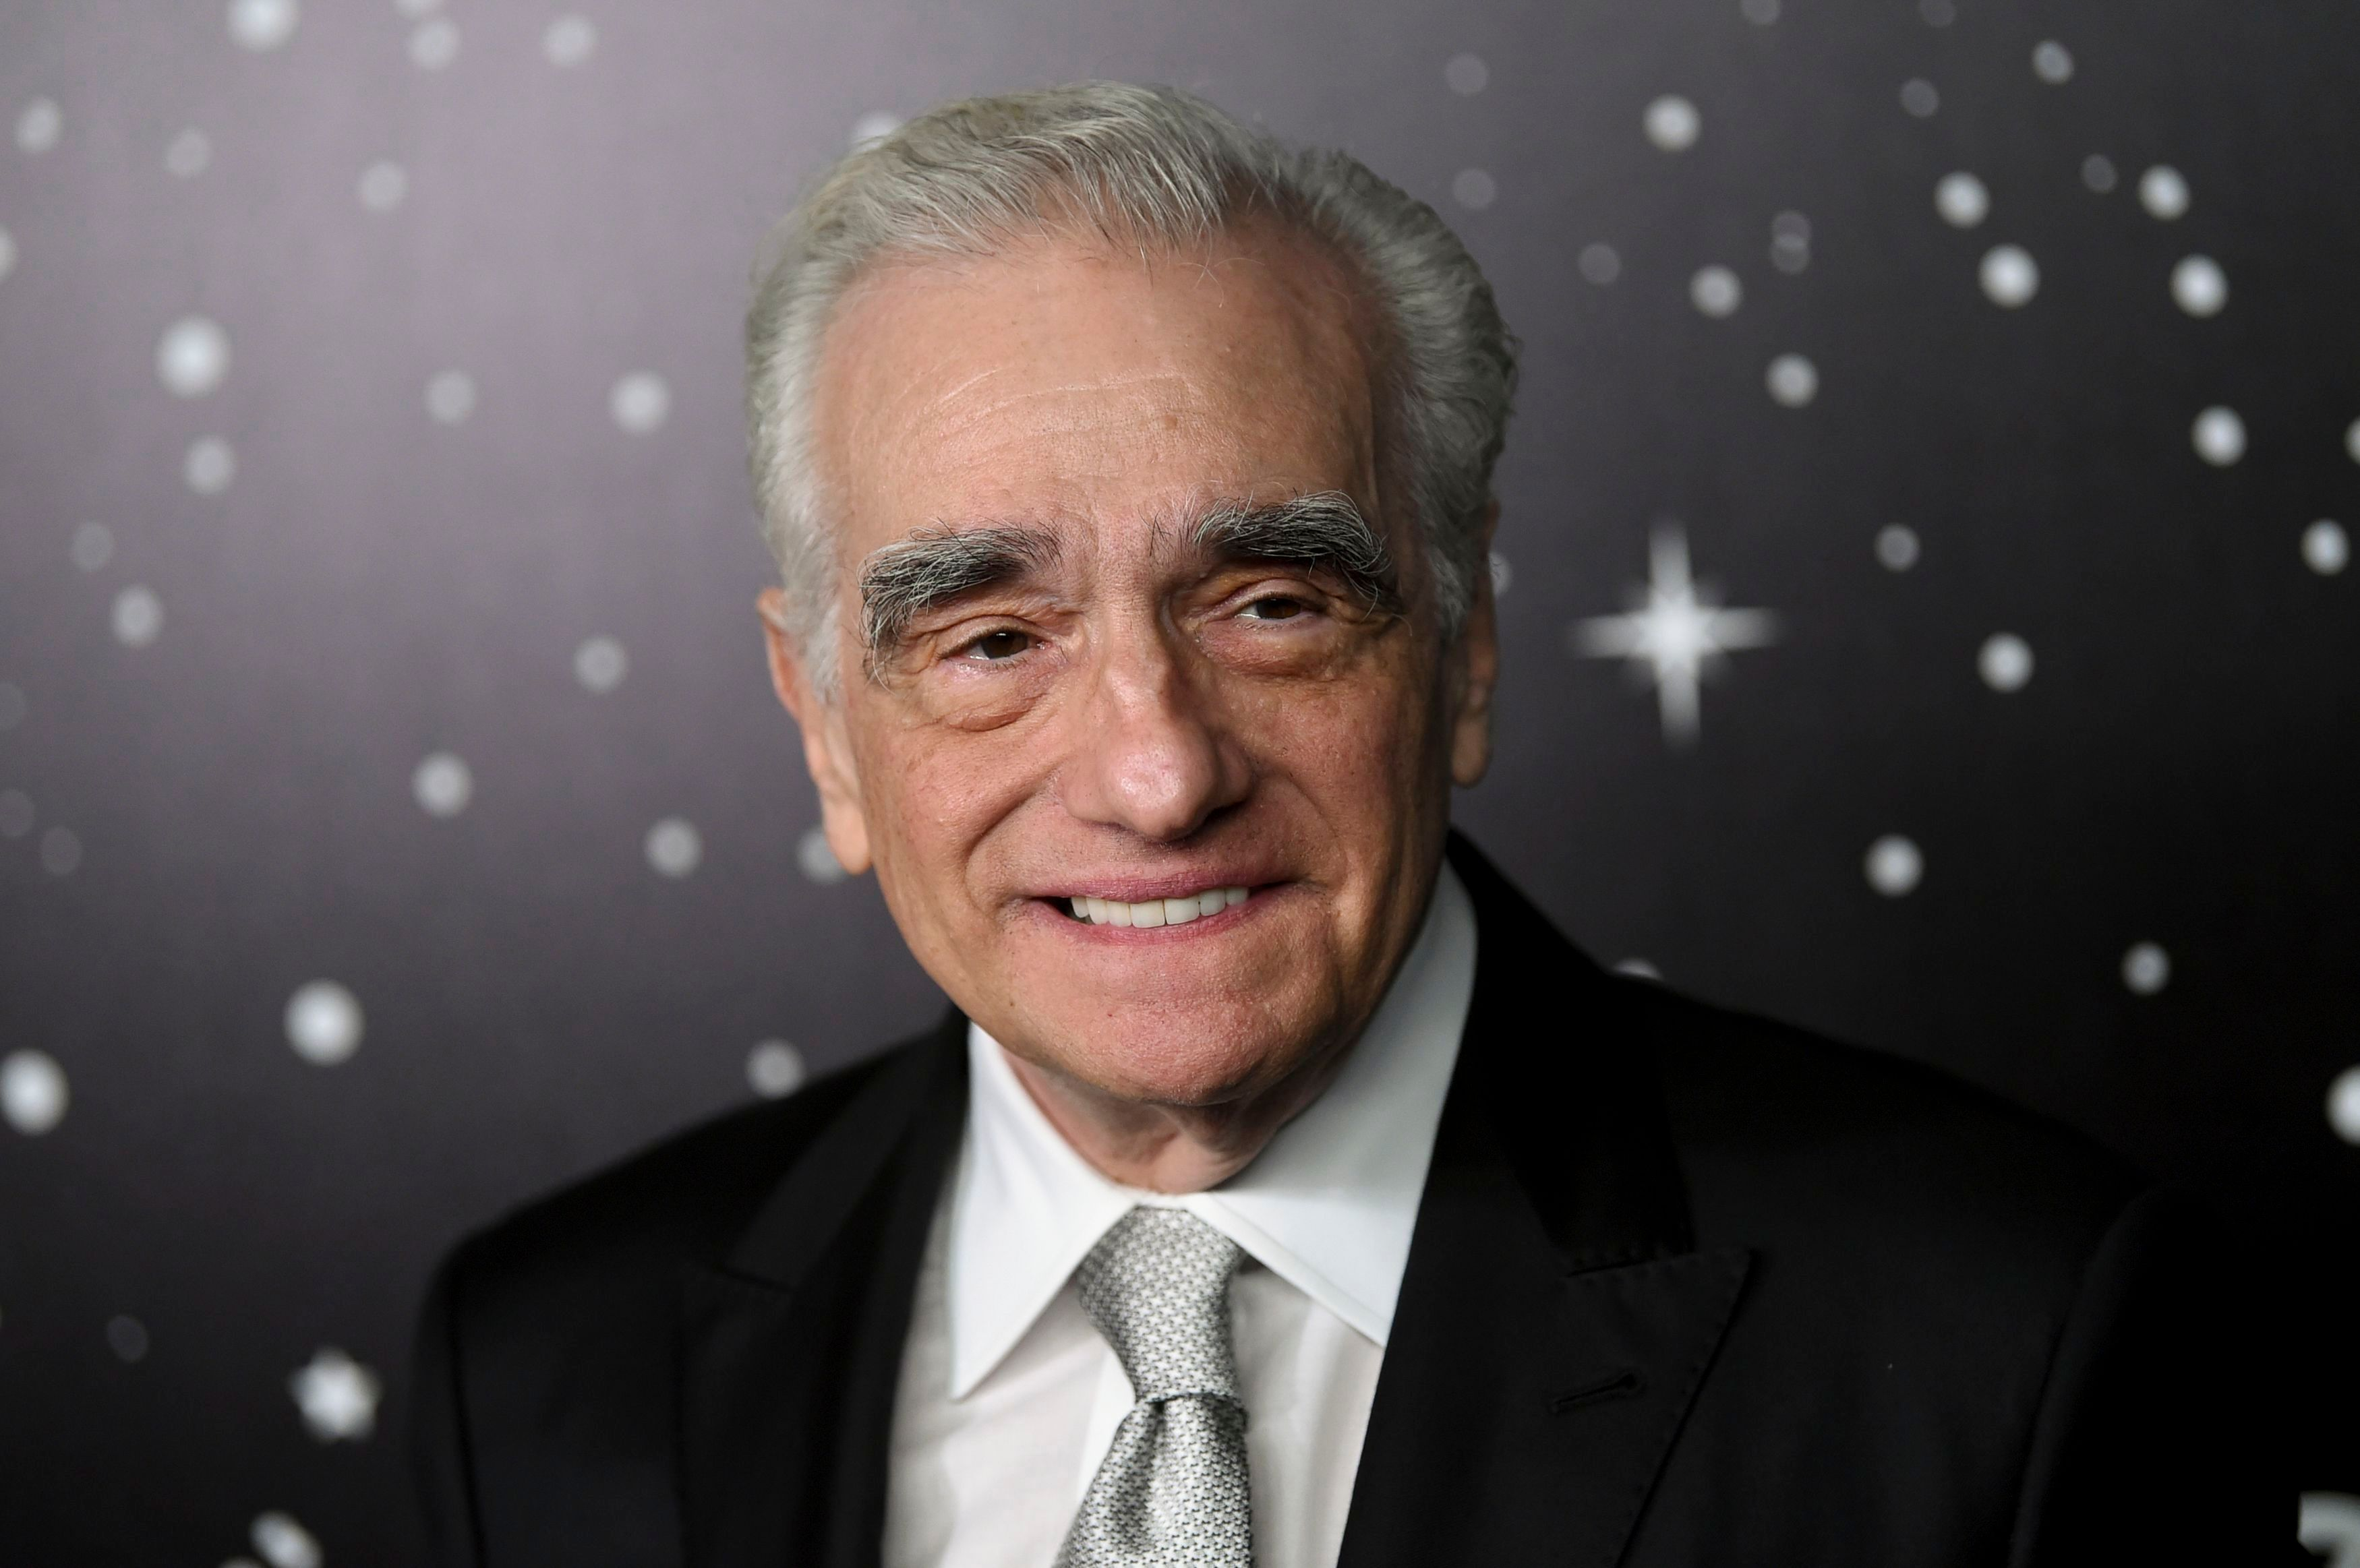 Martin Scorsese spouse and net worth